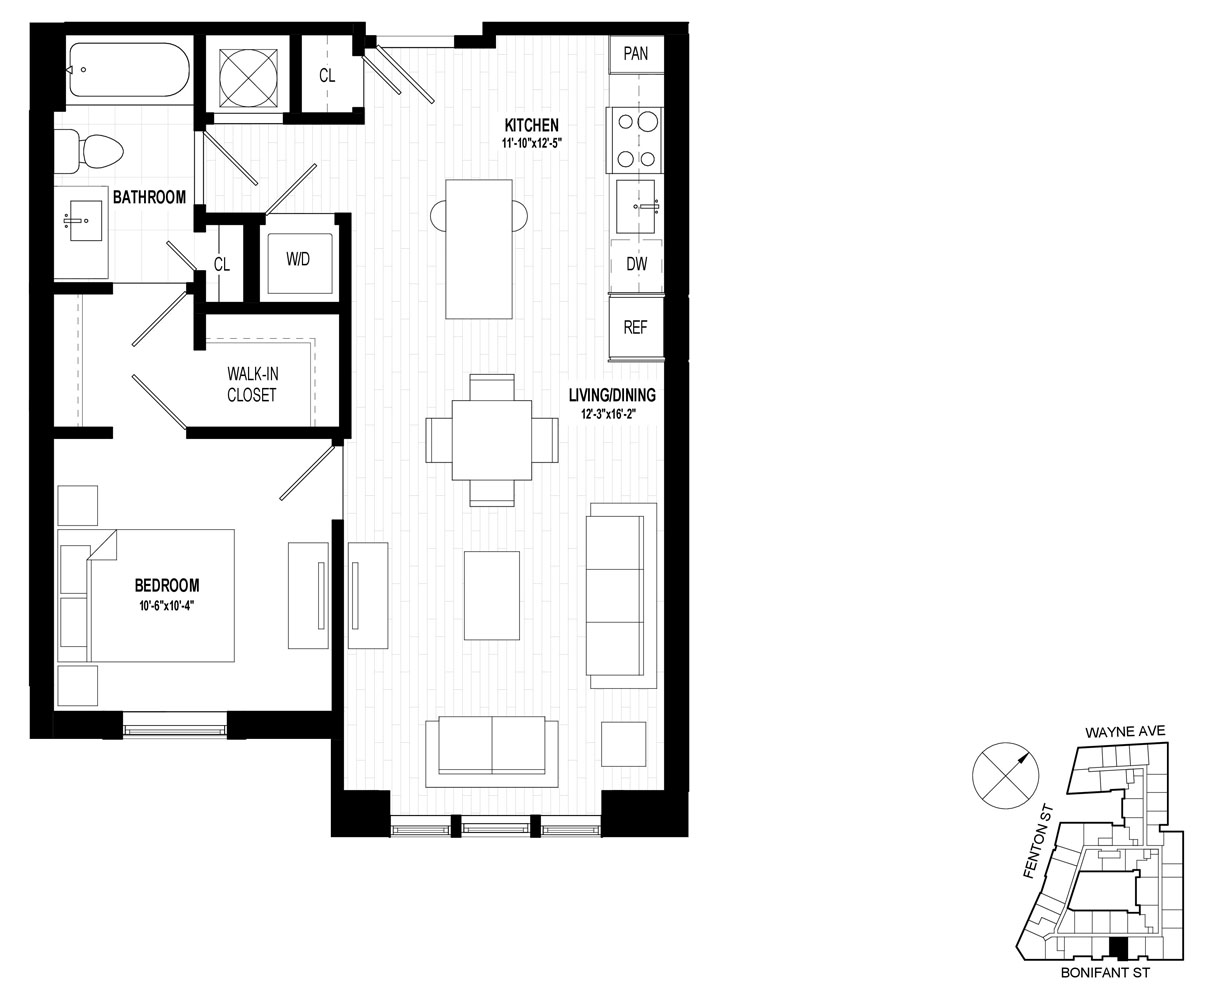 P0578887 761aa18 central a10 682 2 floorplan